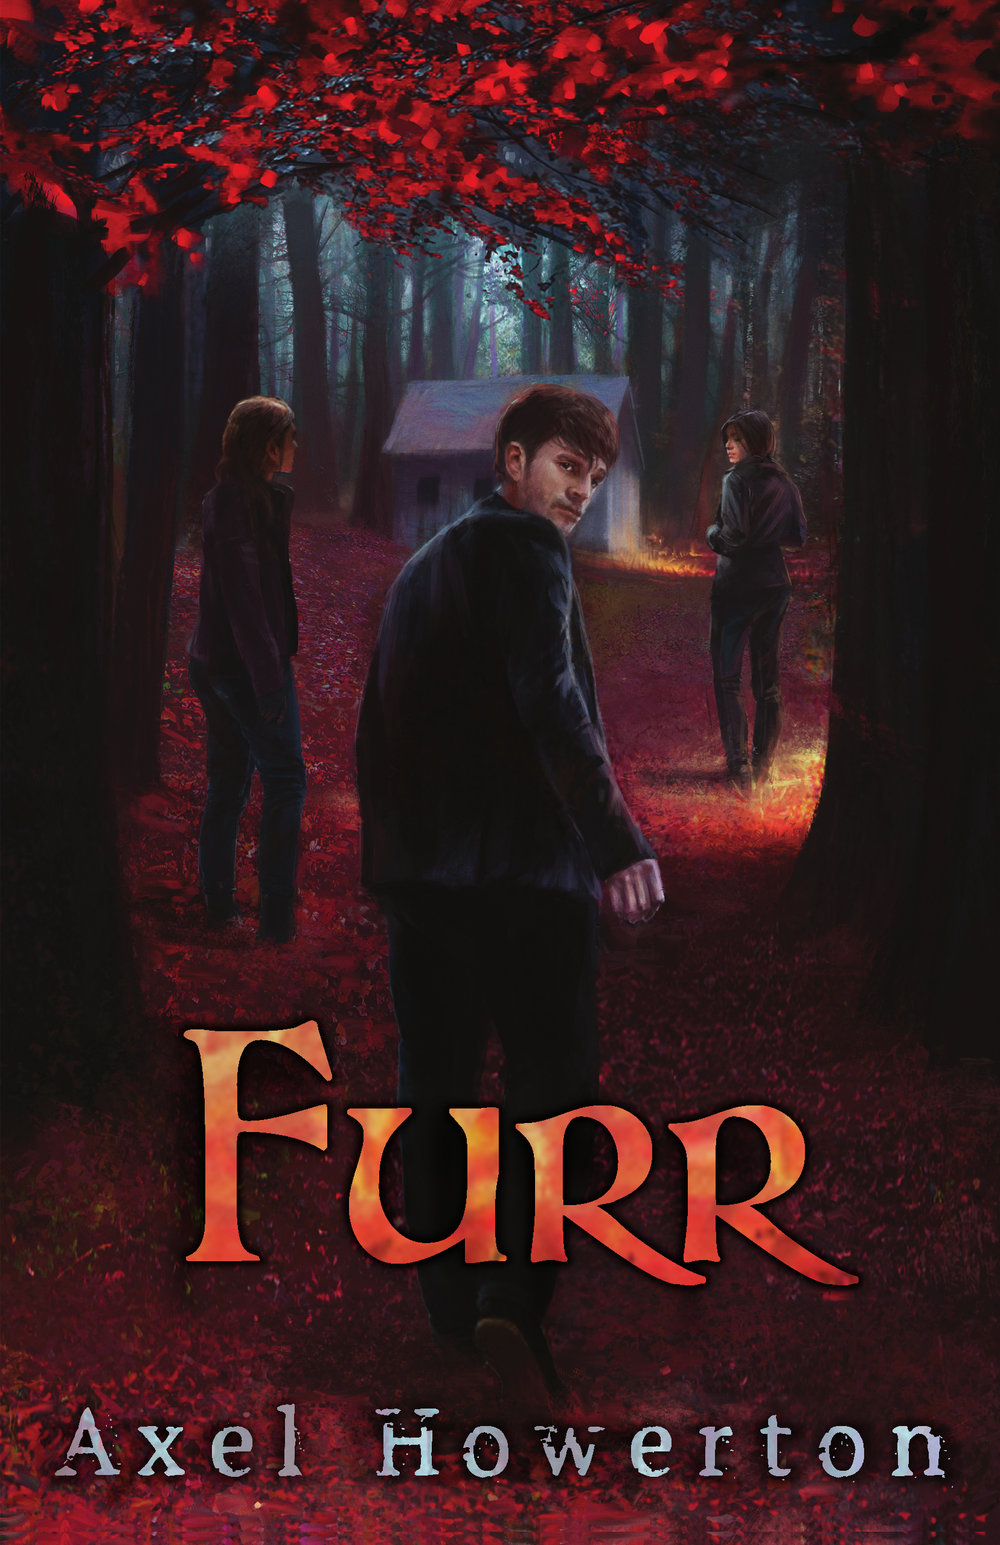 Furr by Axel Howerton - Jimmy Finn is either losing his mind or becoming a monster. Or maybe both...